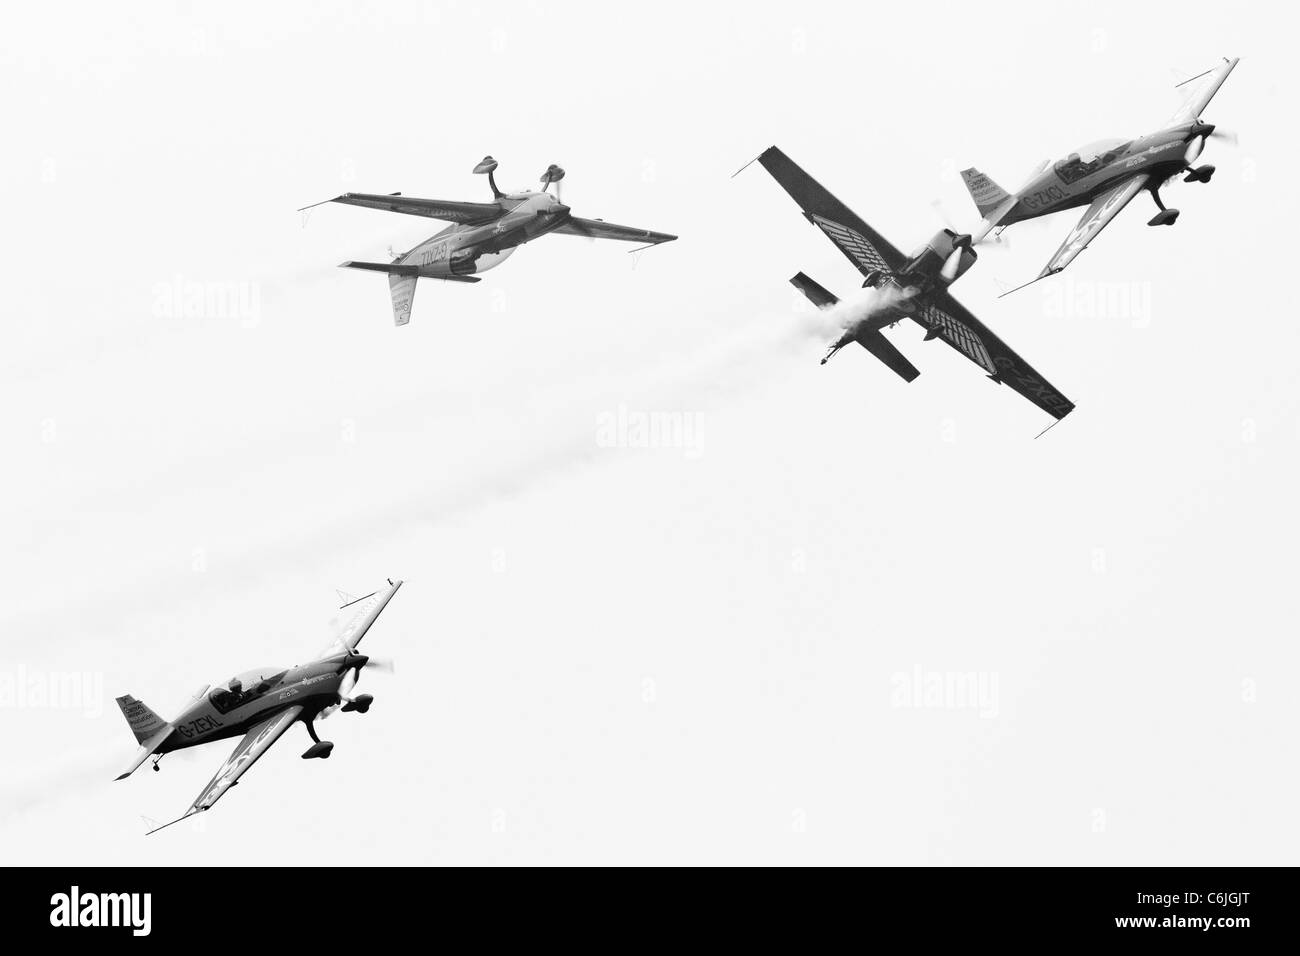 The Blades aerobatic team in action over Shoreham airfield in 2011 - Stock Image